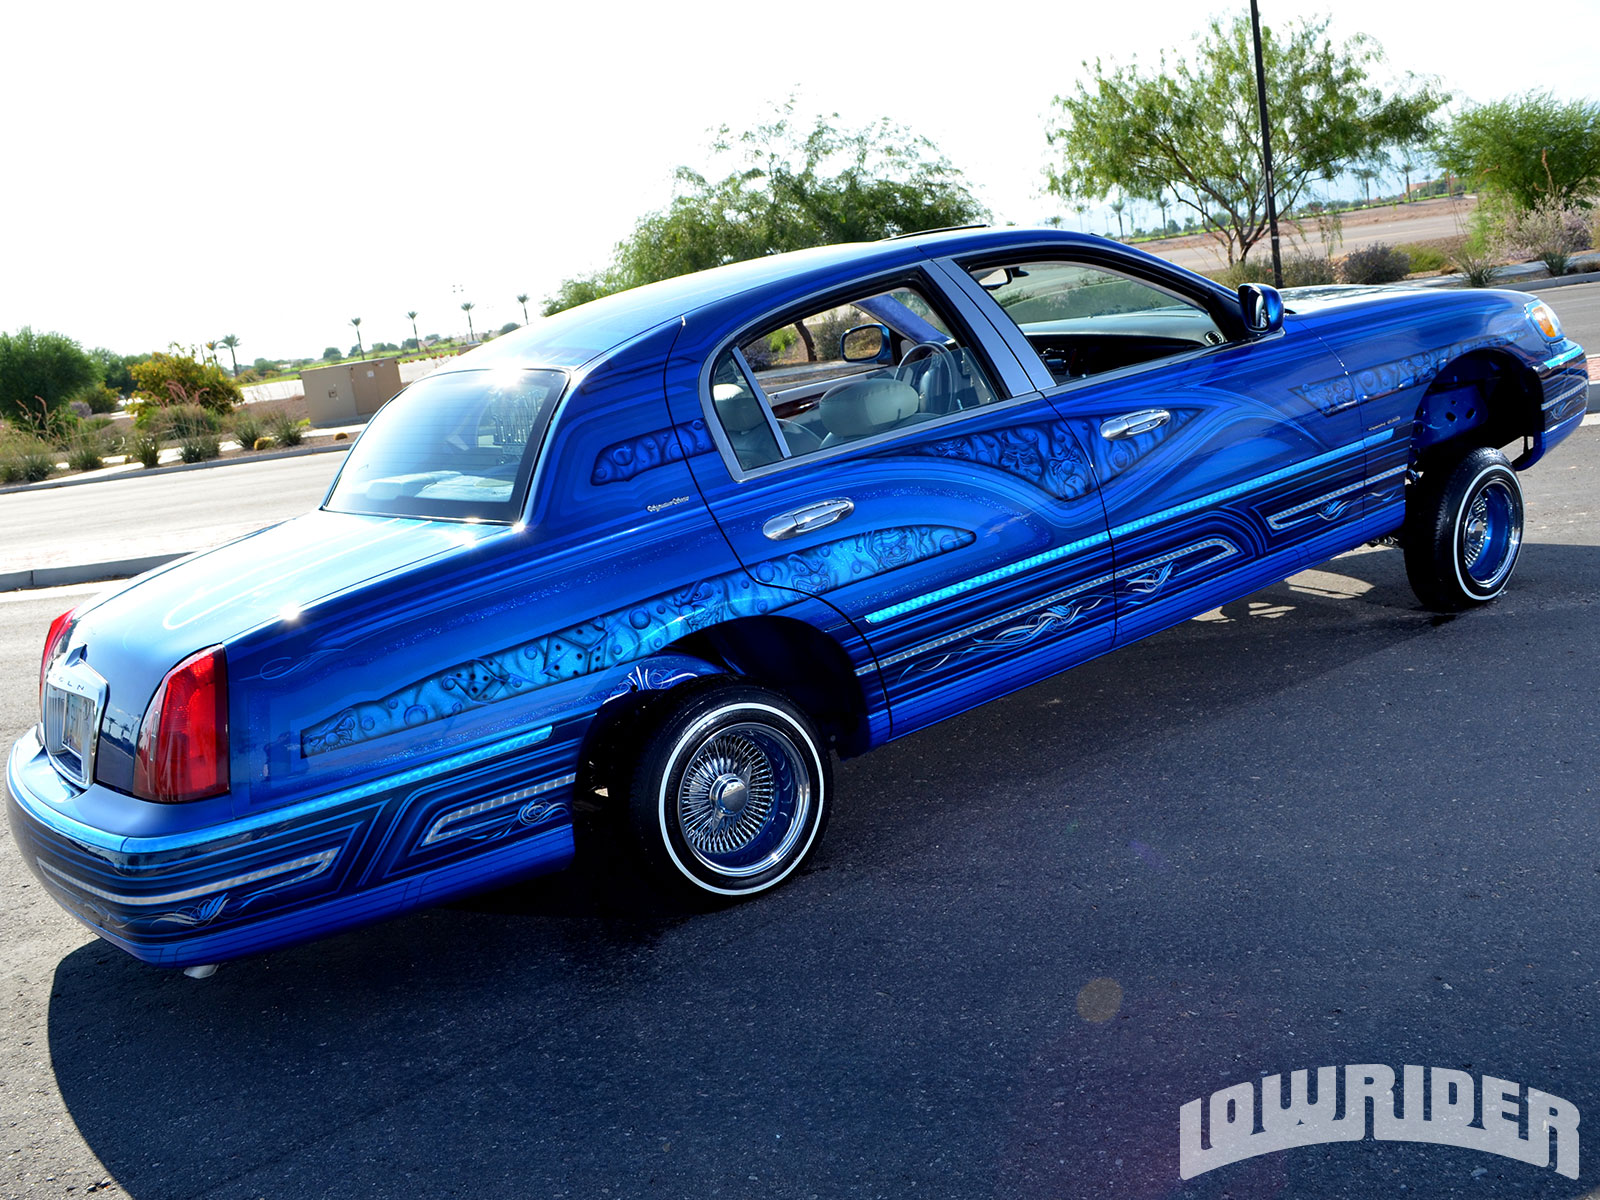 1998 Lincoln Town Car Rear Right Side View Lowrider